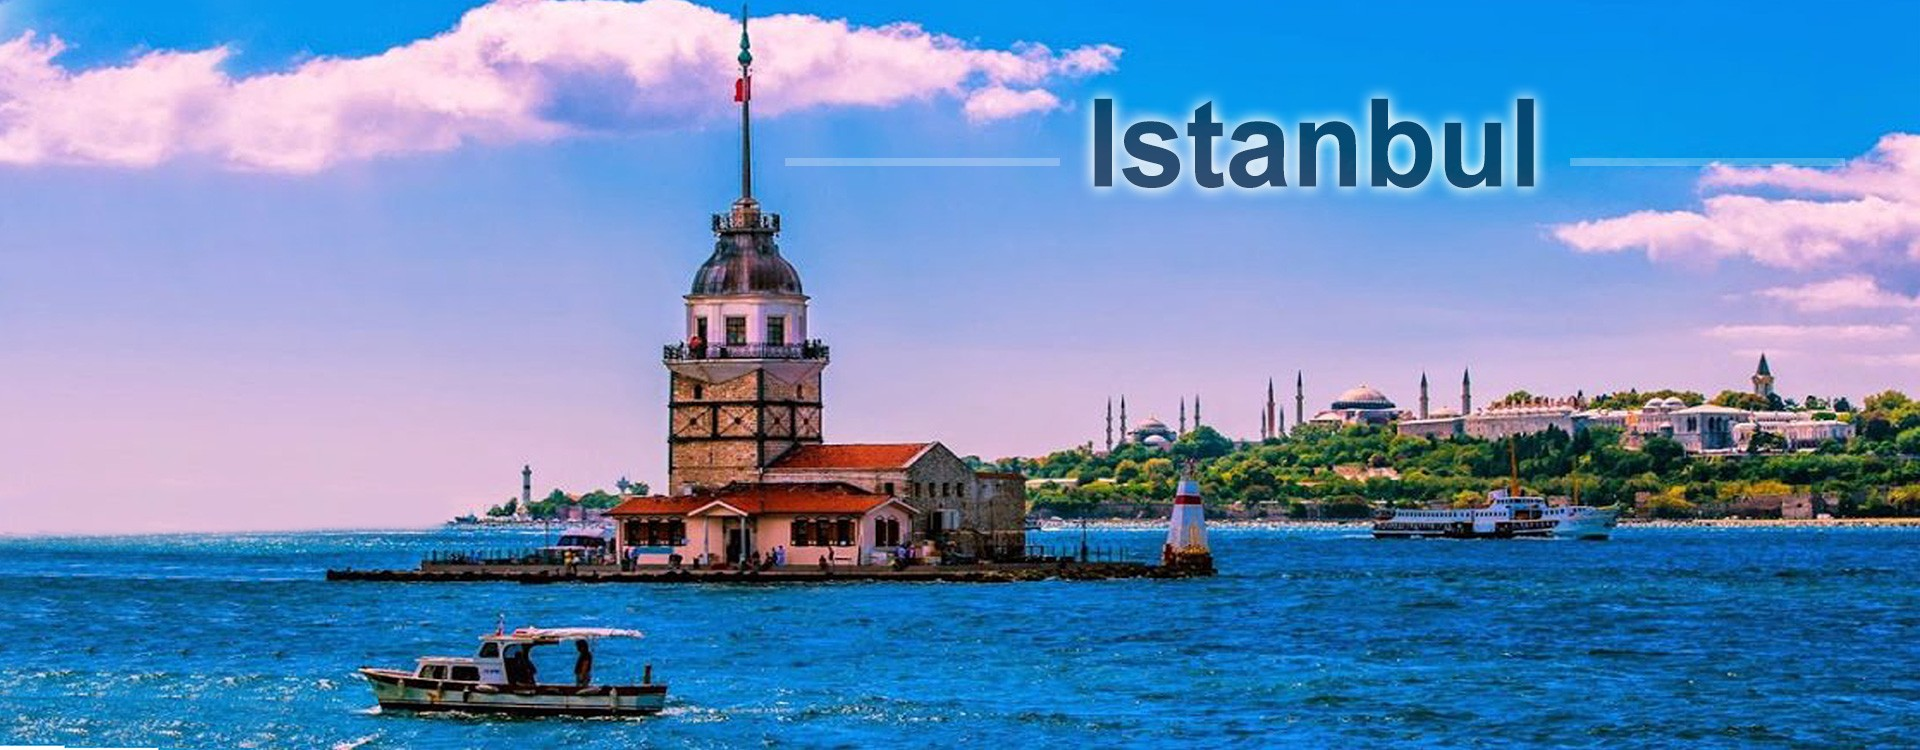 files-homePages-backistanbul-97138e38909da6817d49c0087abd67e2.jpg